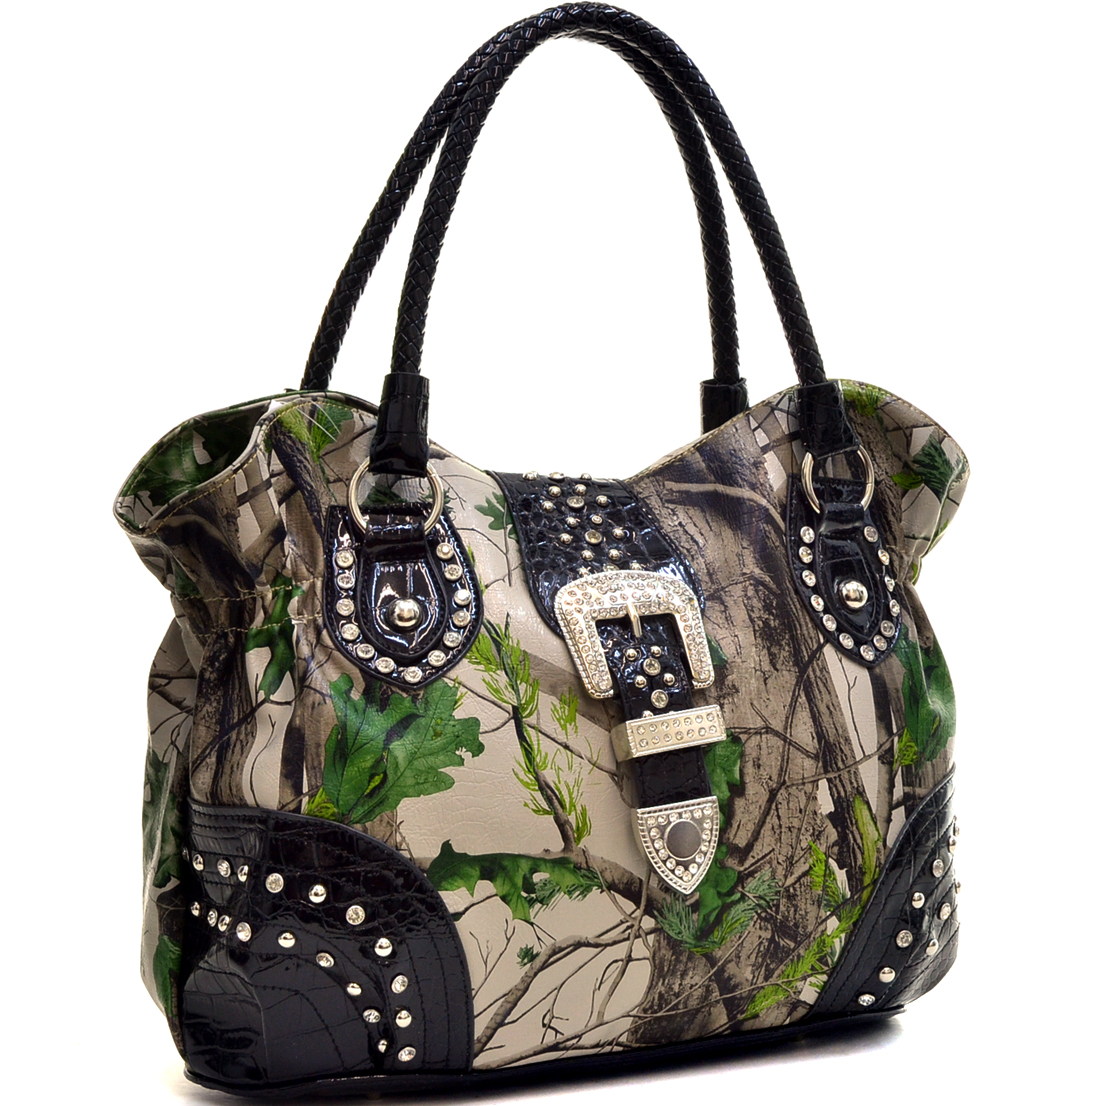 Patent Faux Leather Camo Rhinestone Buckle Shoulder Bag